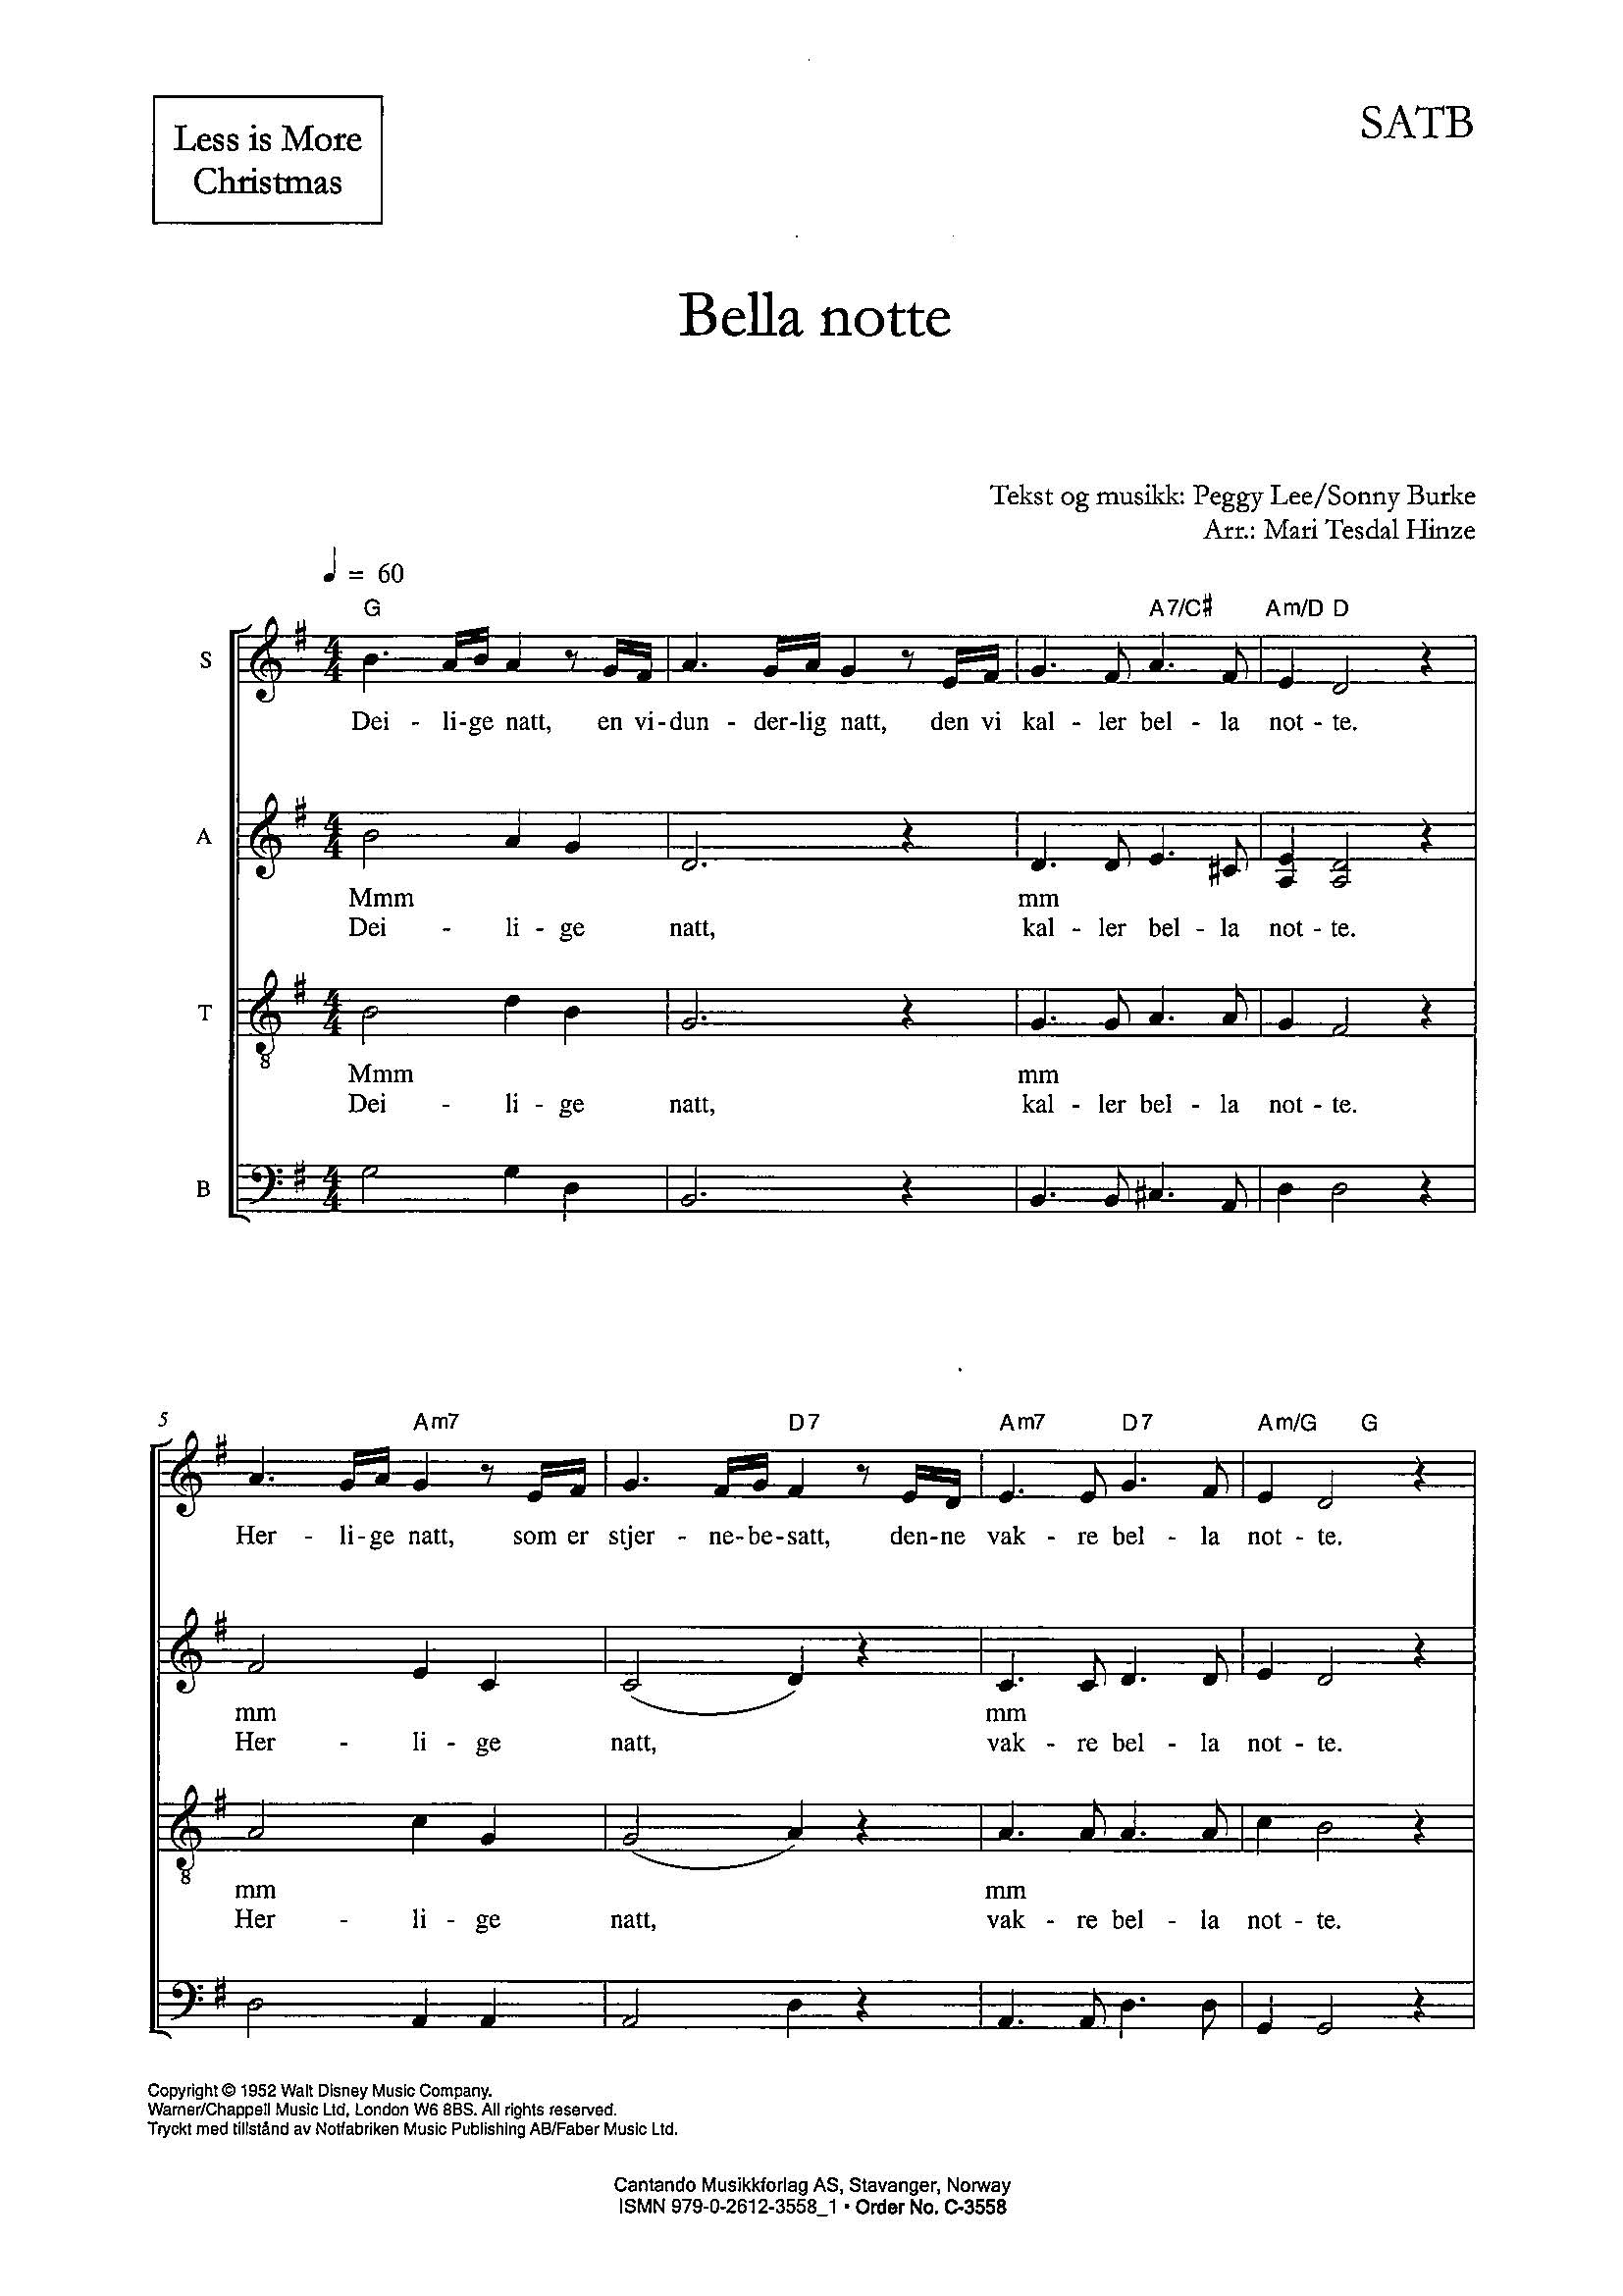 Bella notte - SATB (digital vare)